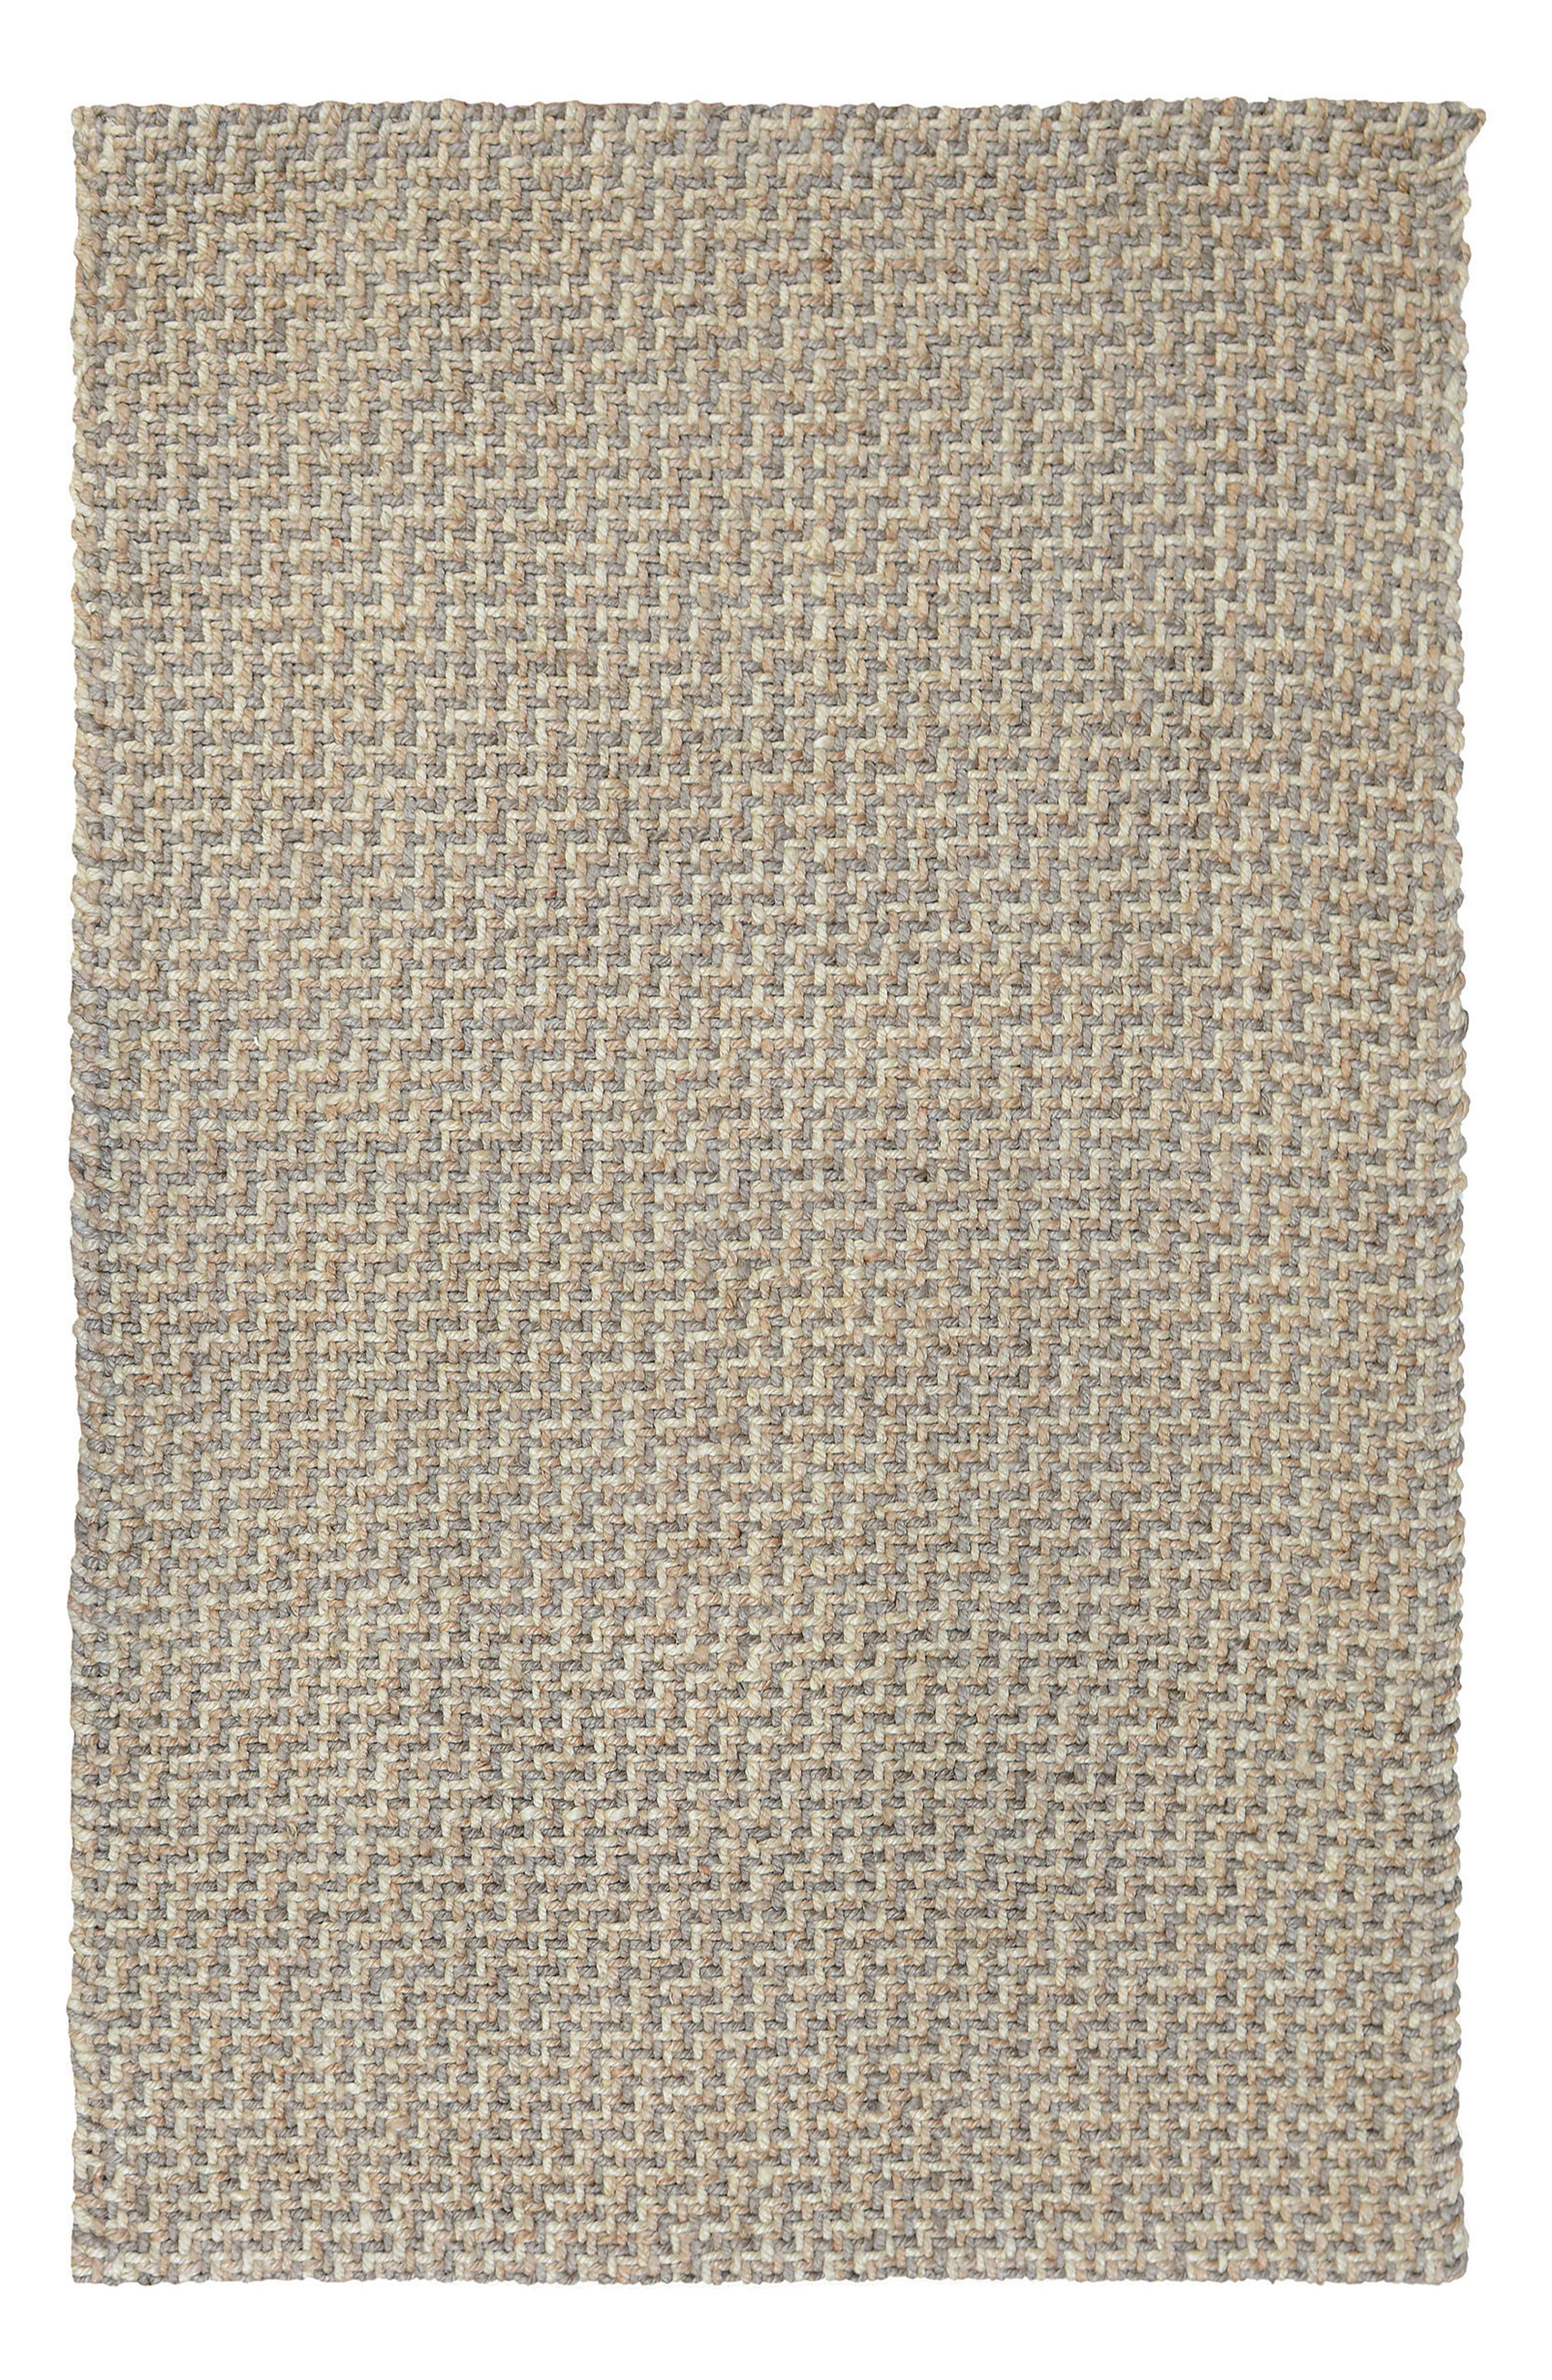 Alternate Image 1 Selected - Villa Home Collection Ladera Handwoven Rug